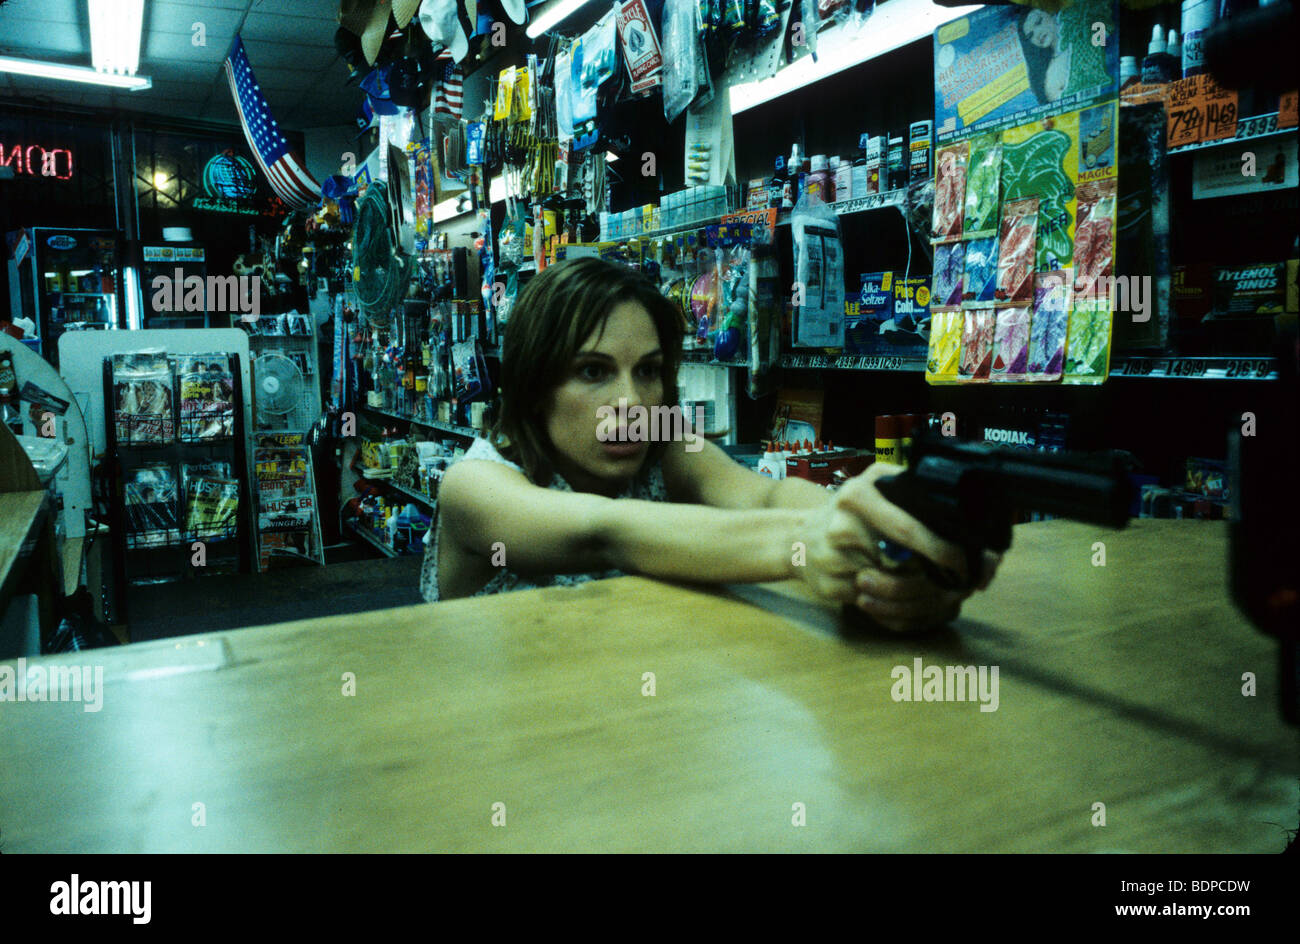 11.14 Year : 2004 Director : Greg Marcks Hilary Swank - Stock Image